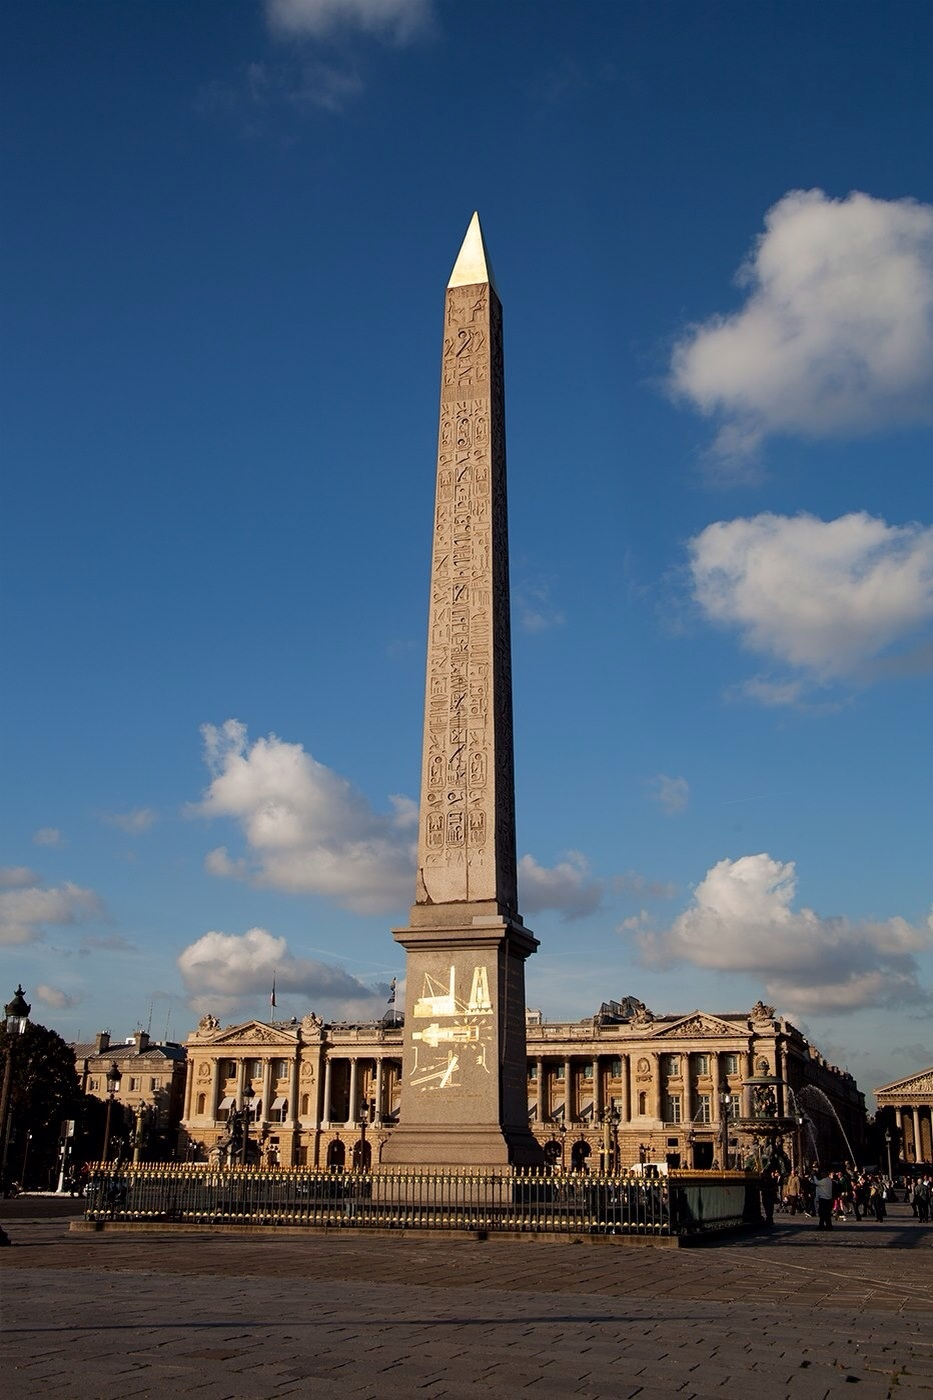 Place de La Concorde in Paris France.  The obelisk structure that symbolizes one of the suns rays.  (Photo found on Pinterest)